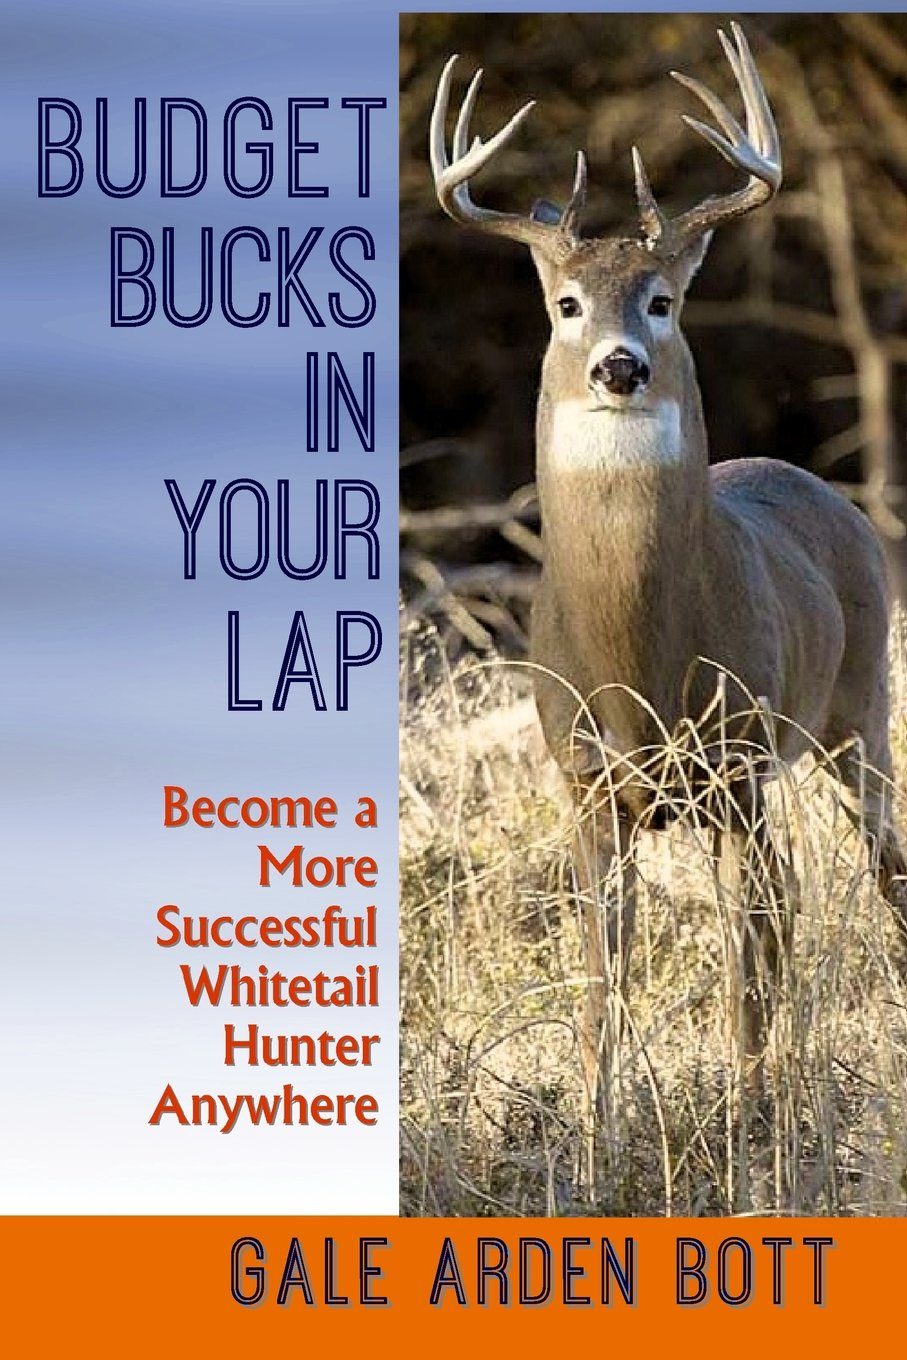 Budget Bucks in Your LapGale Arden Bott -